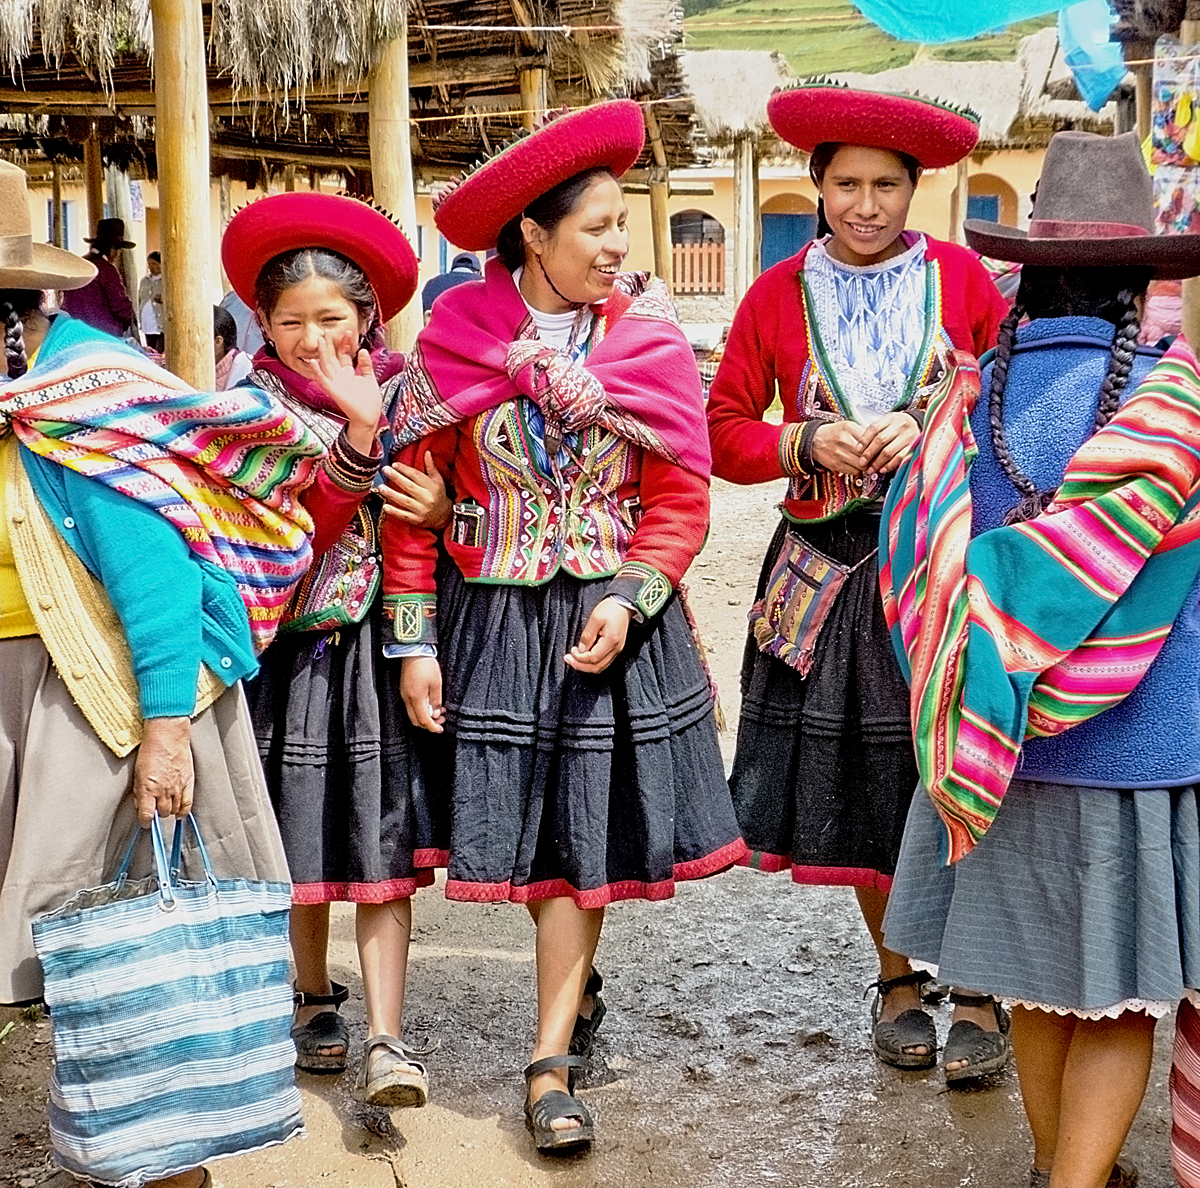 Chinchero Crowds Colour And Sacred Ceremonies